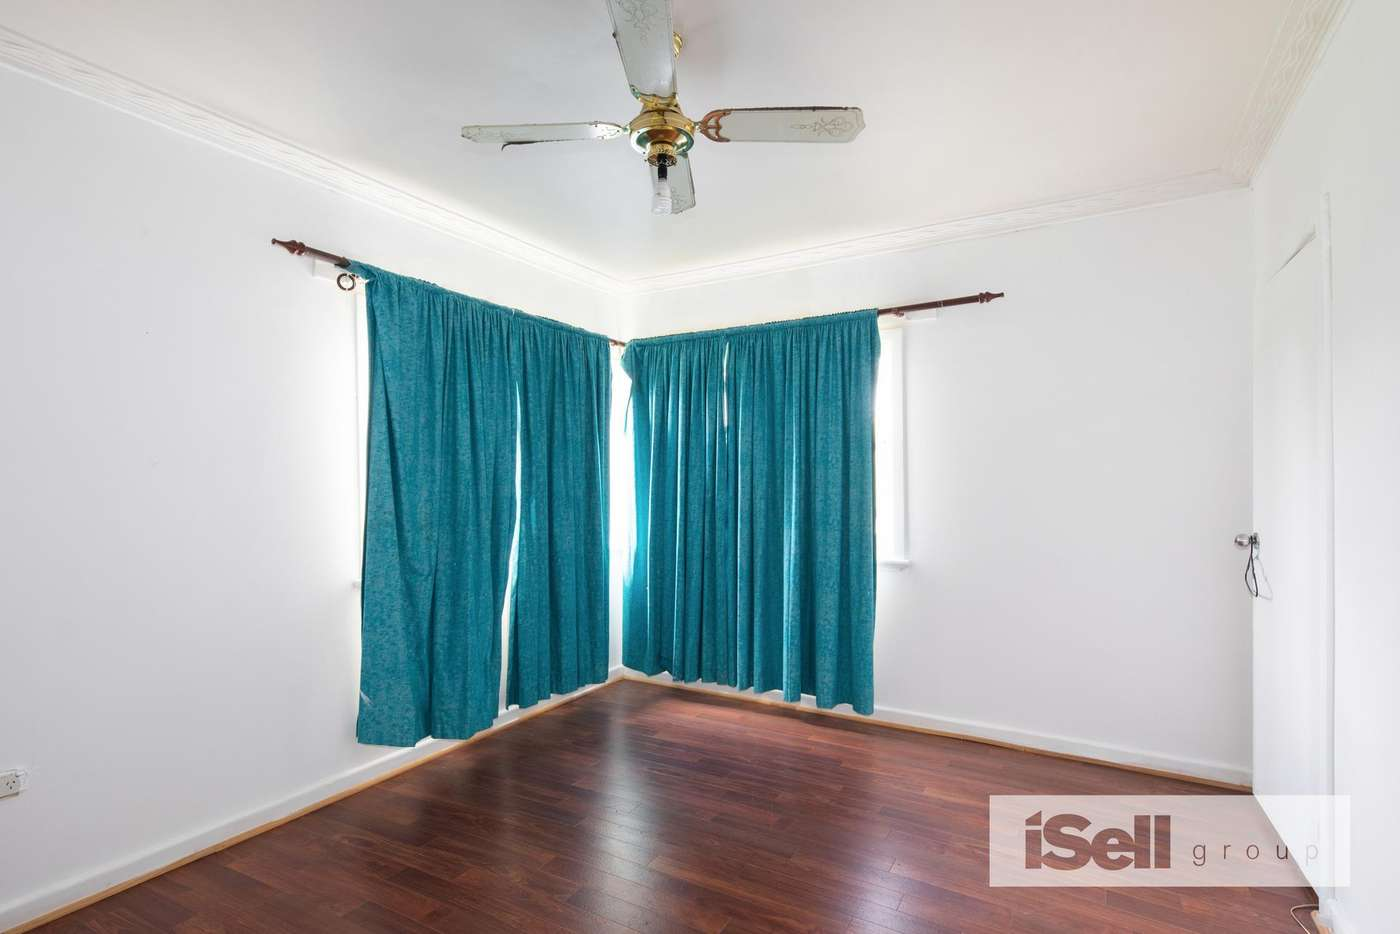 Seventh view of Homely house listing, 16 Young Street, Springvale VIC 3171